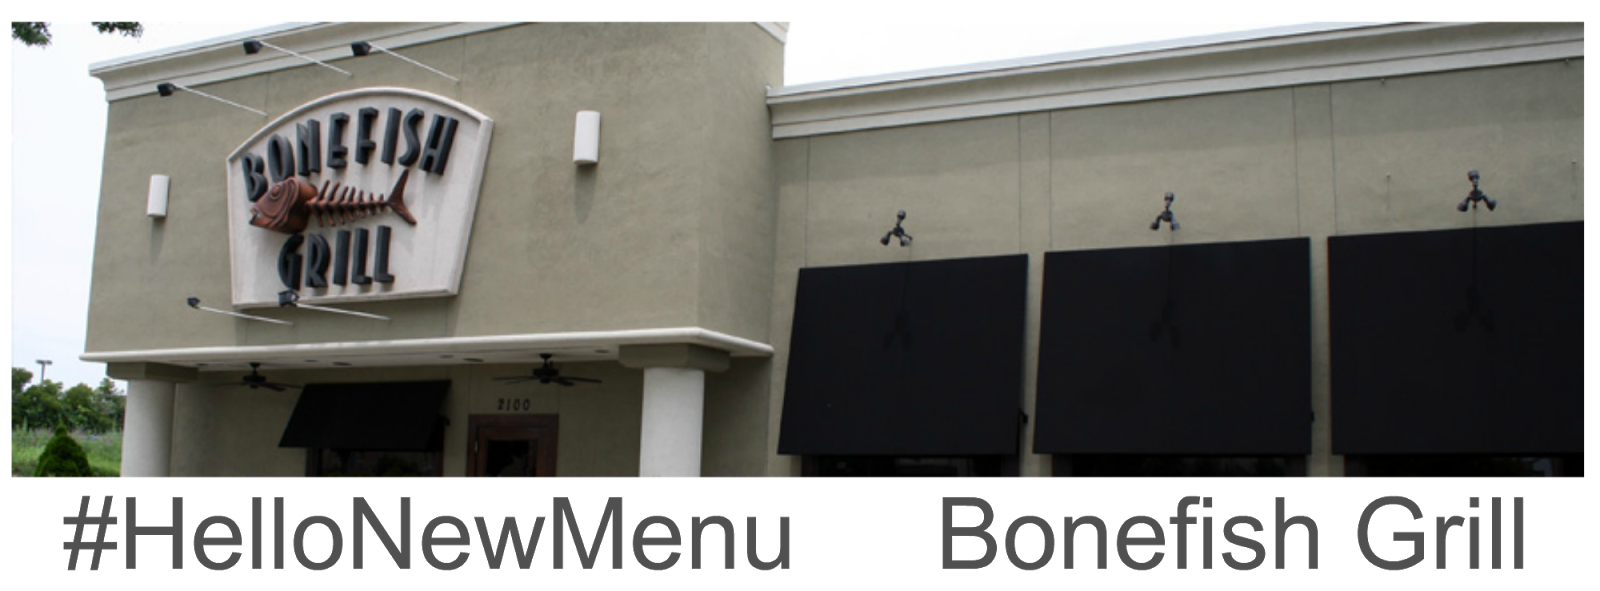 Try the New Menu at Bonefish Grill #HelloNewMenu